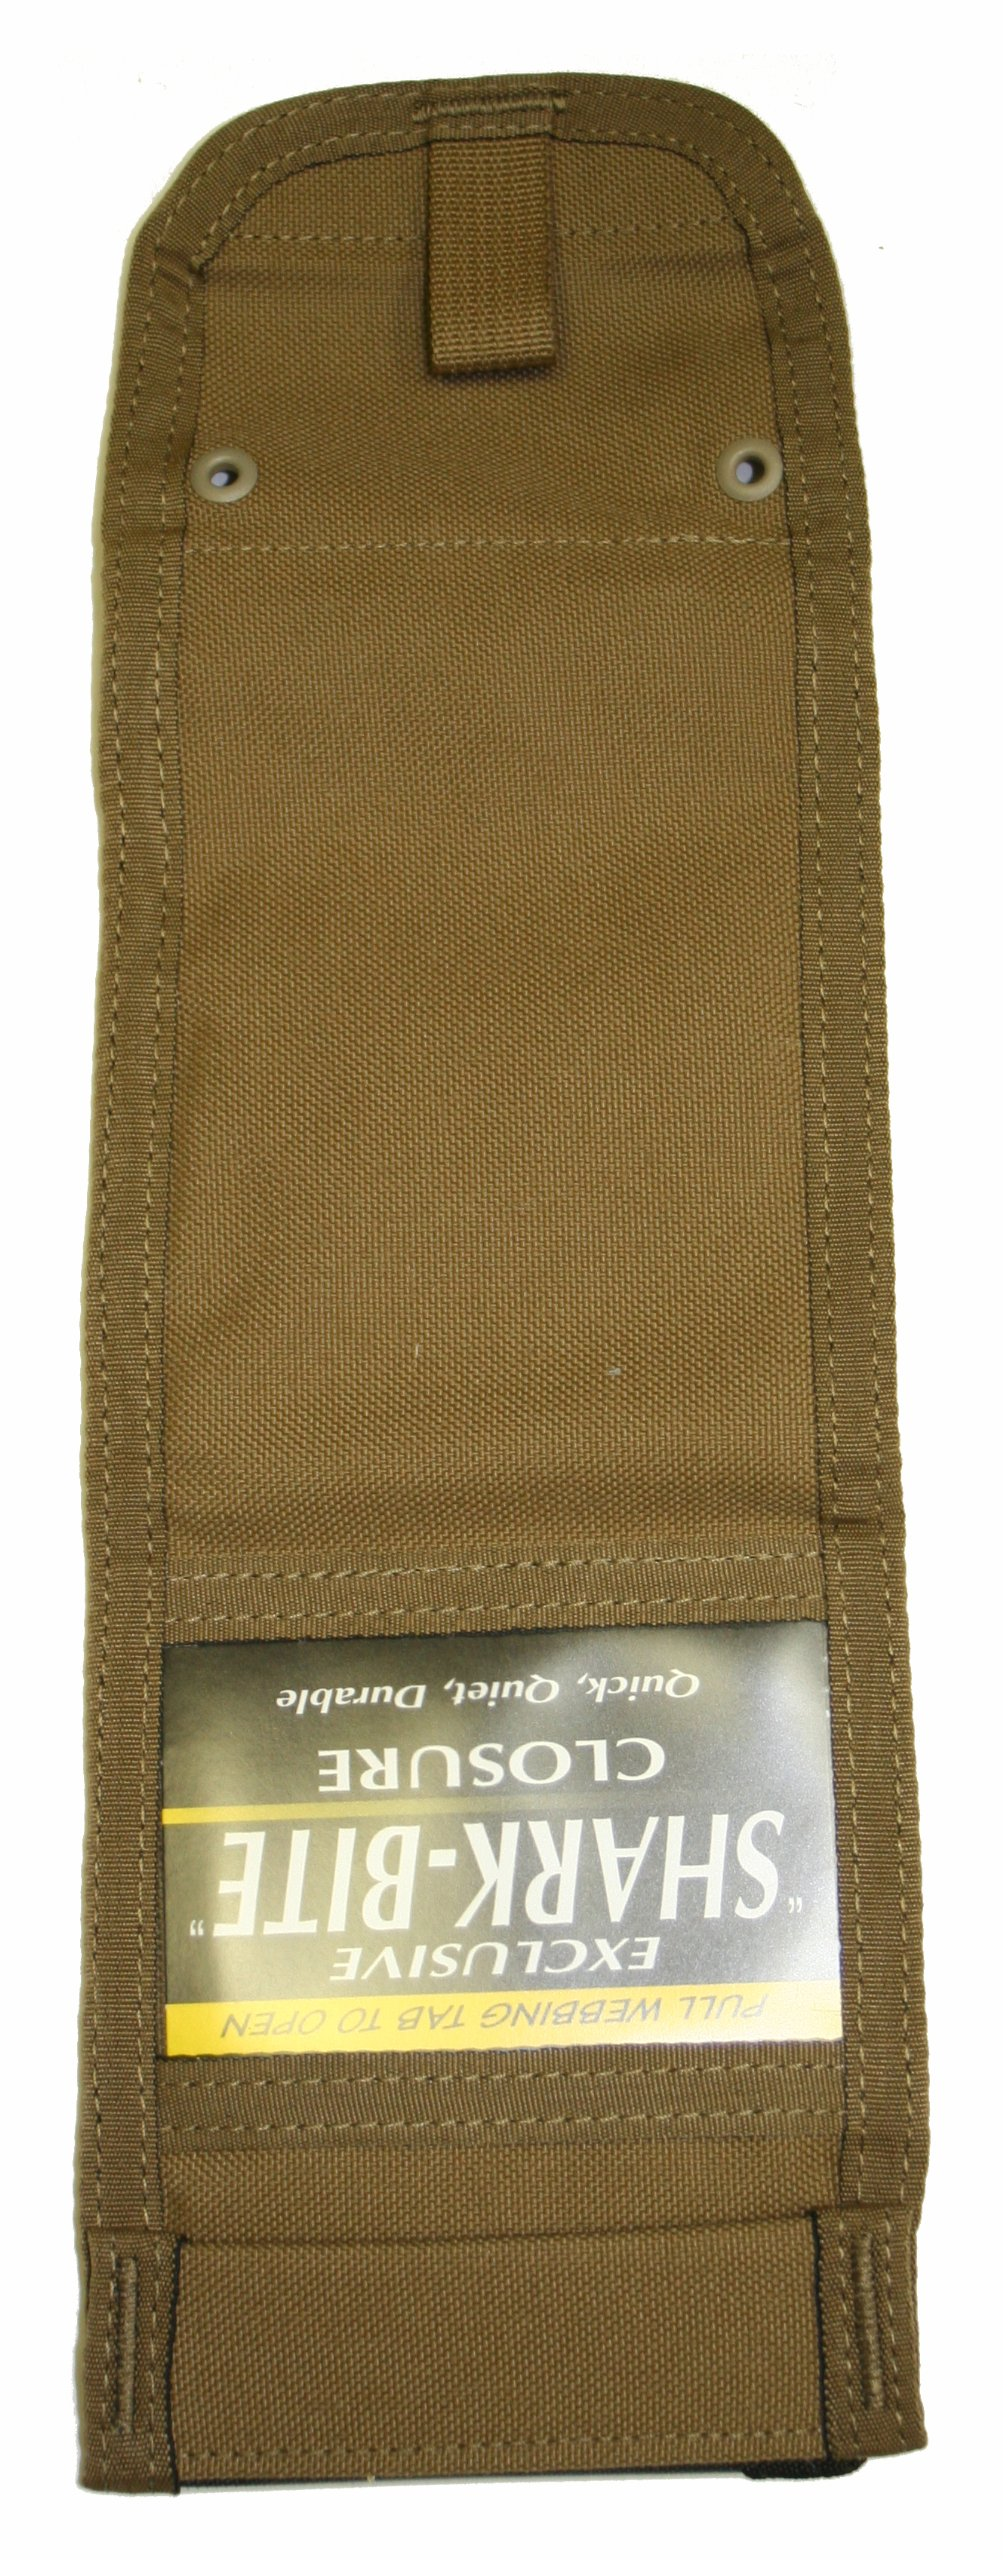 Spec.-Ops. Brand T.H.E. Wallet Coyote Brown